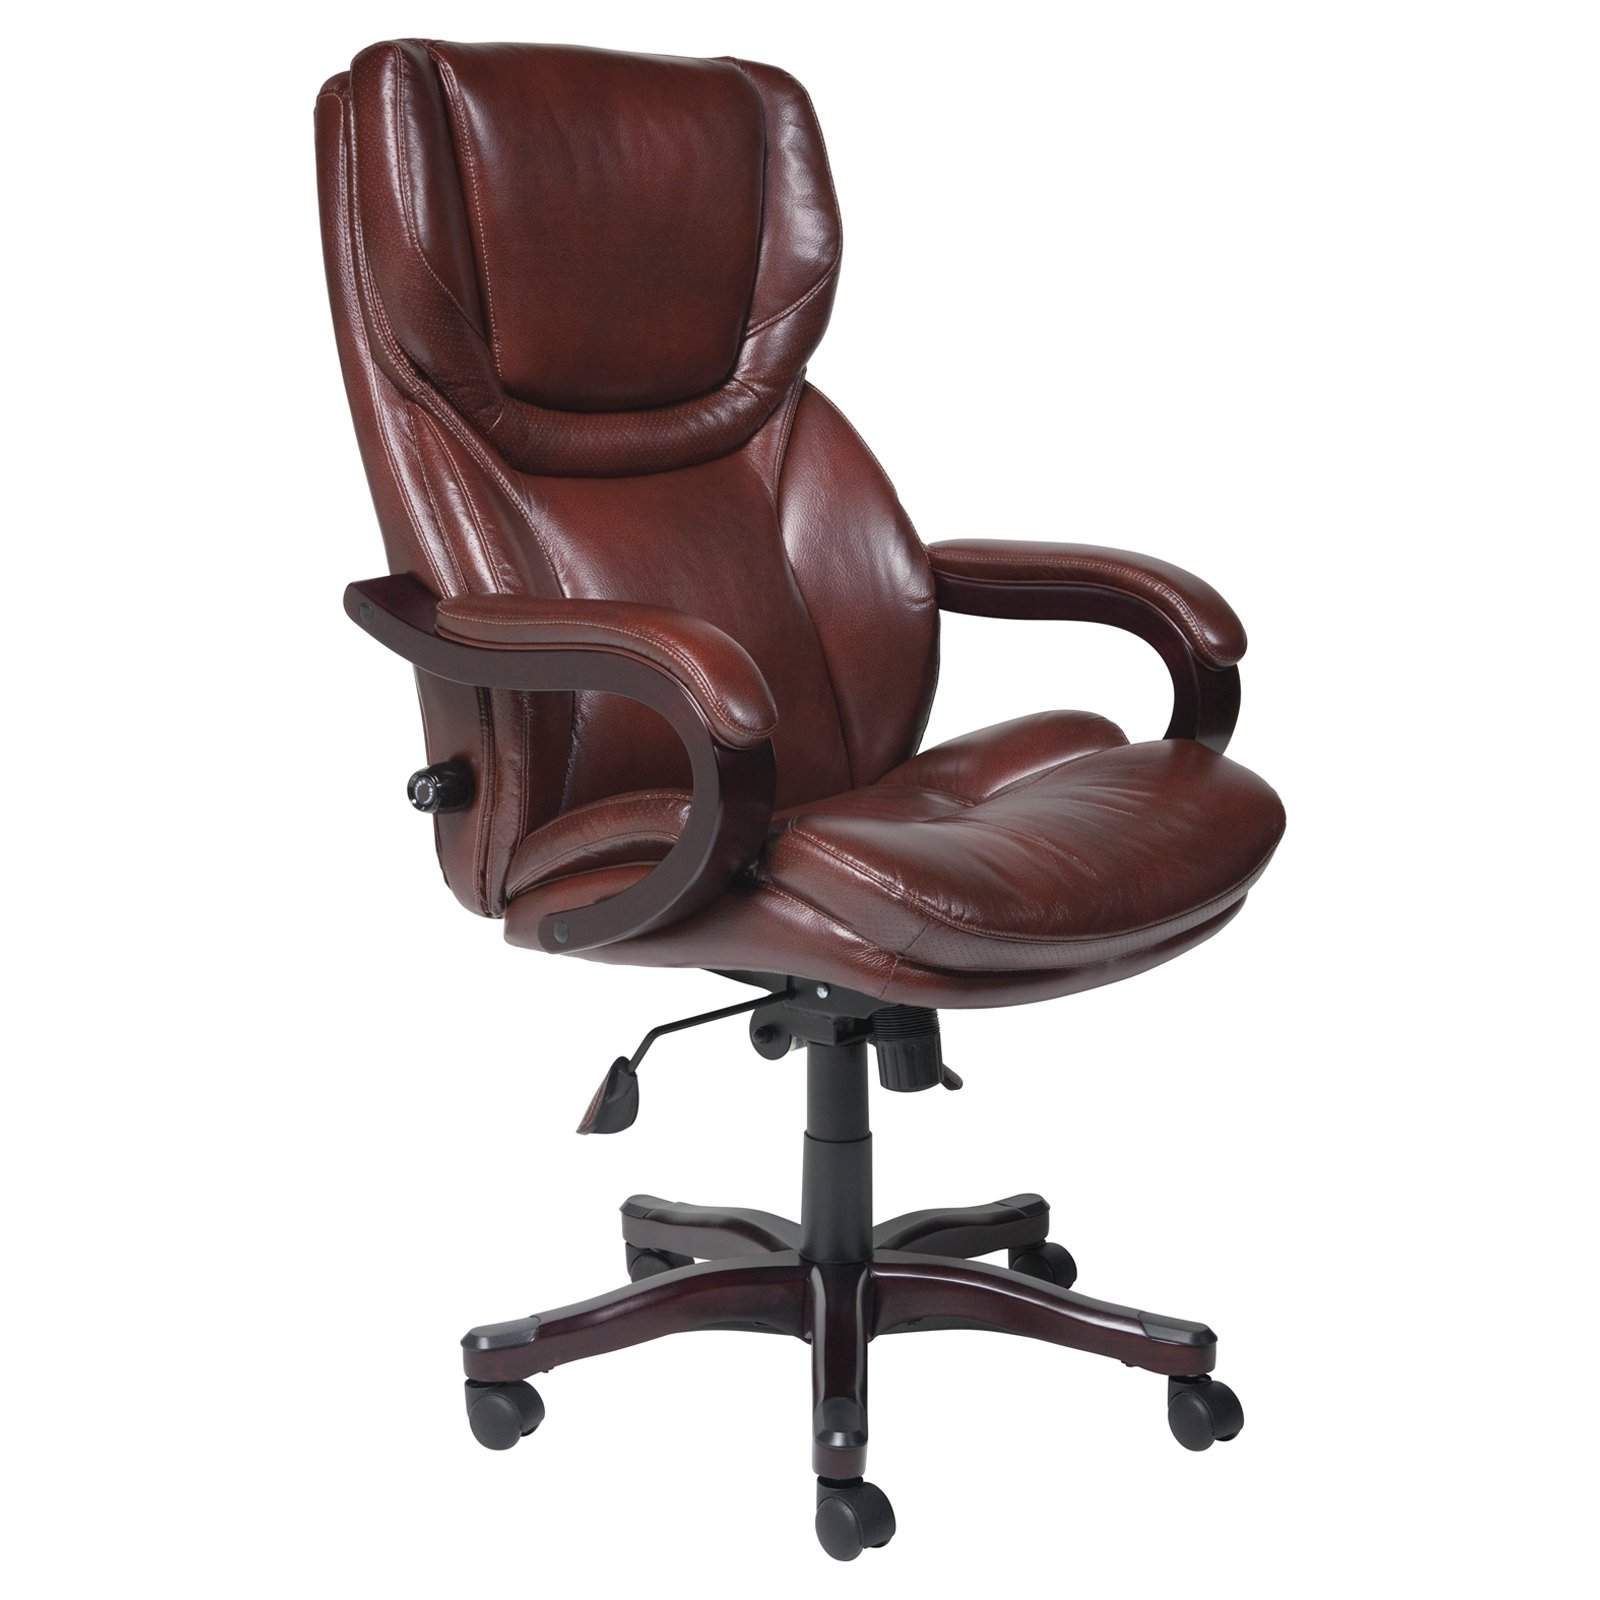 Belleze Executive Reclining Office Chair High Back Faux Leather Footrest  Armchair Recline w/ Backrest Pillow, Black - Traveller Location